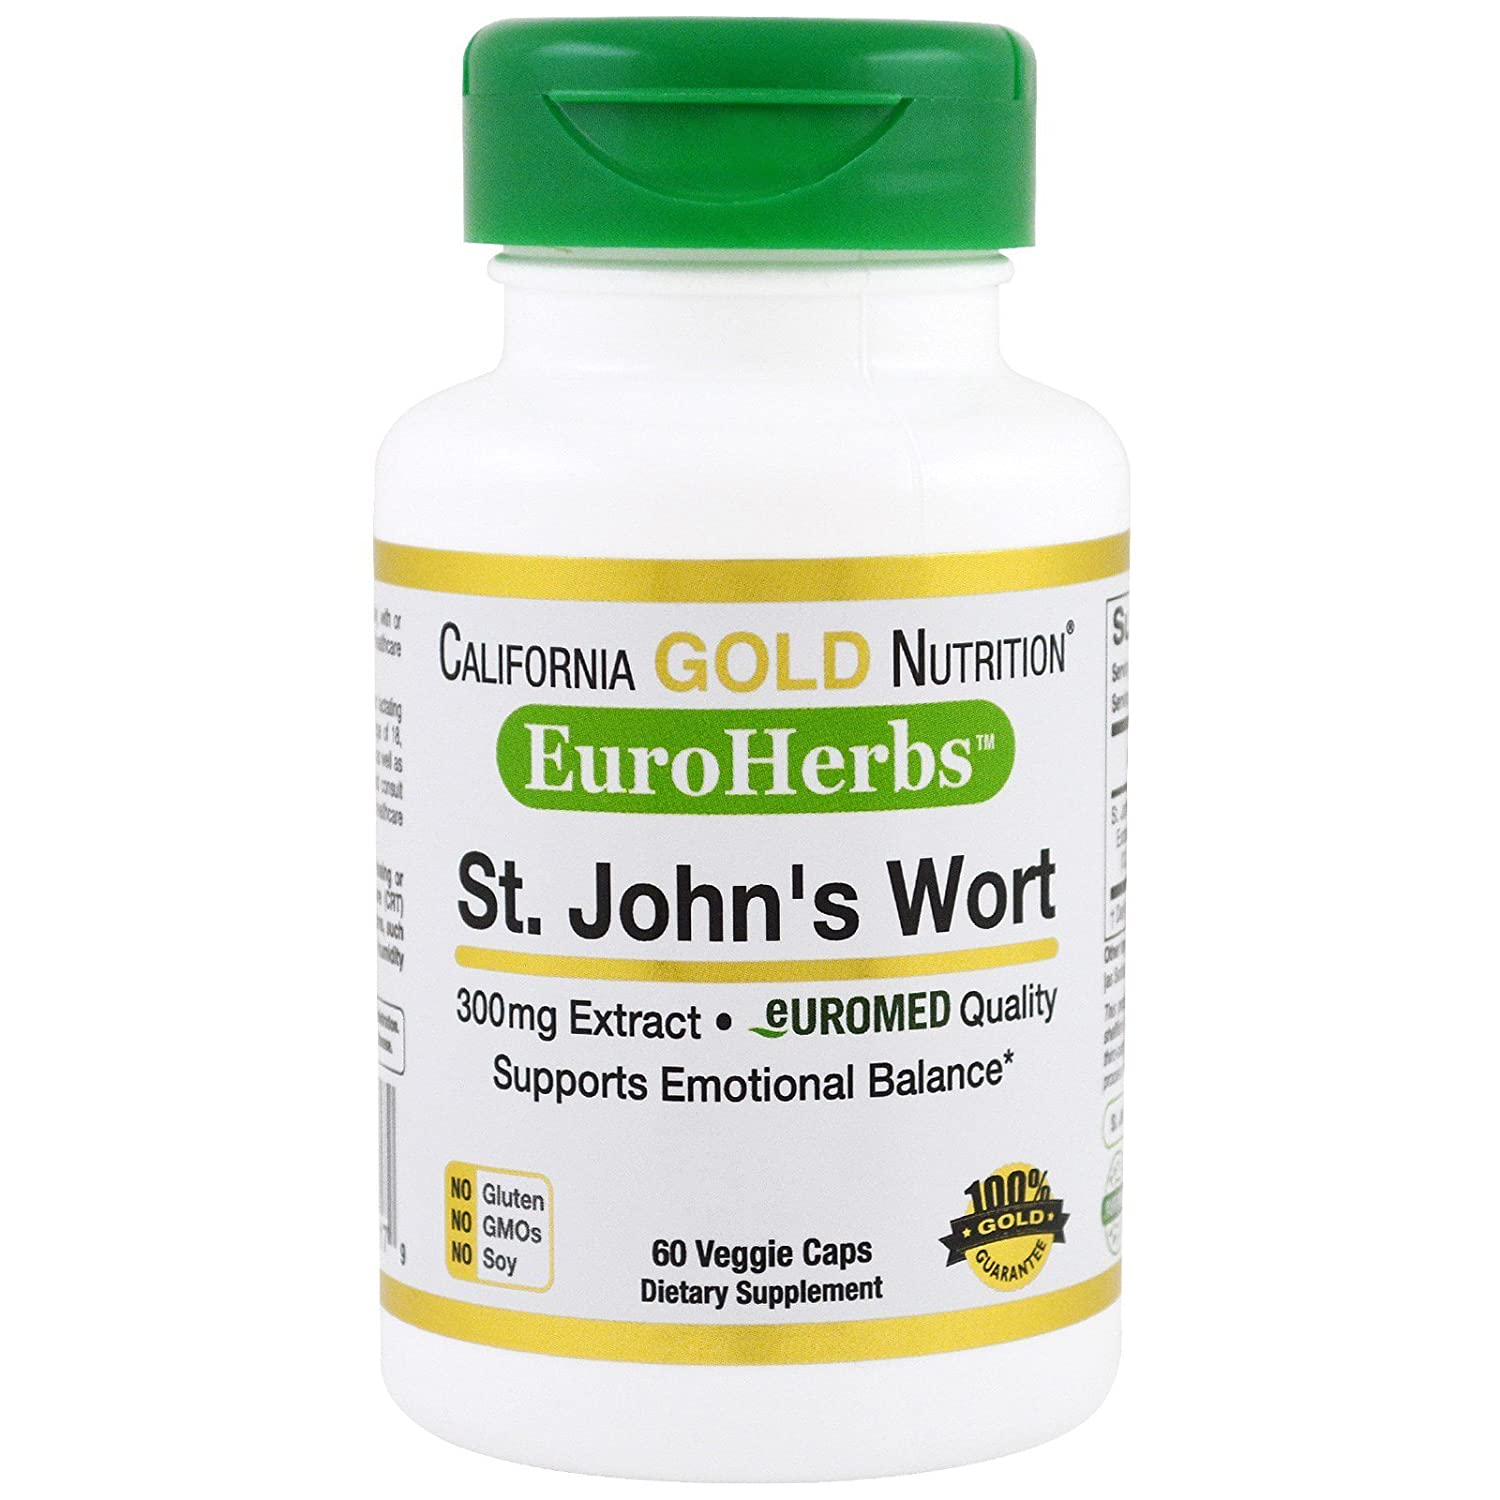 Amazon.com: California Gold Nutrition St John s Wort Extract EuroHerbs 300 mg 60 Veggie Caps, Milk-Free, Egg-Free, Fish-Free, Gluten-Free, No Artificial ...